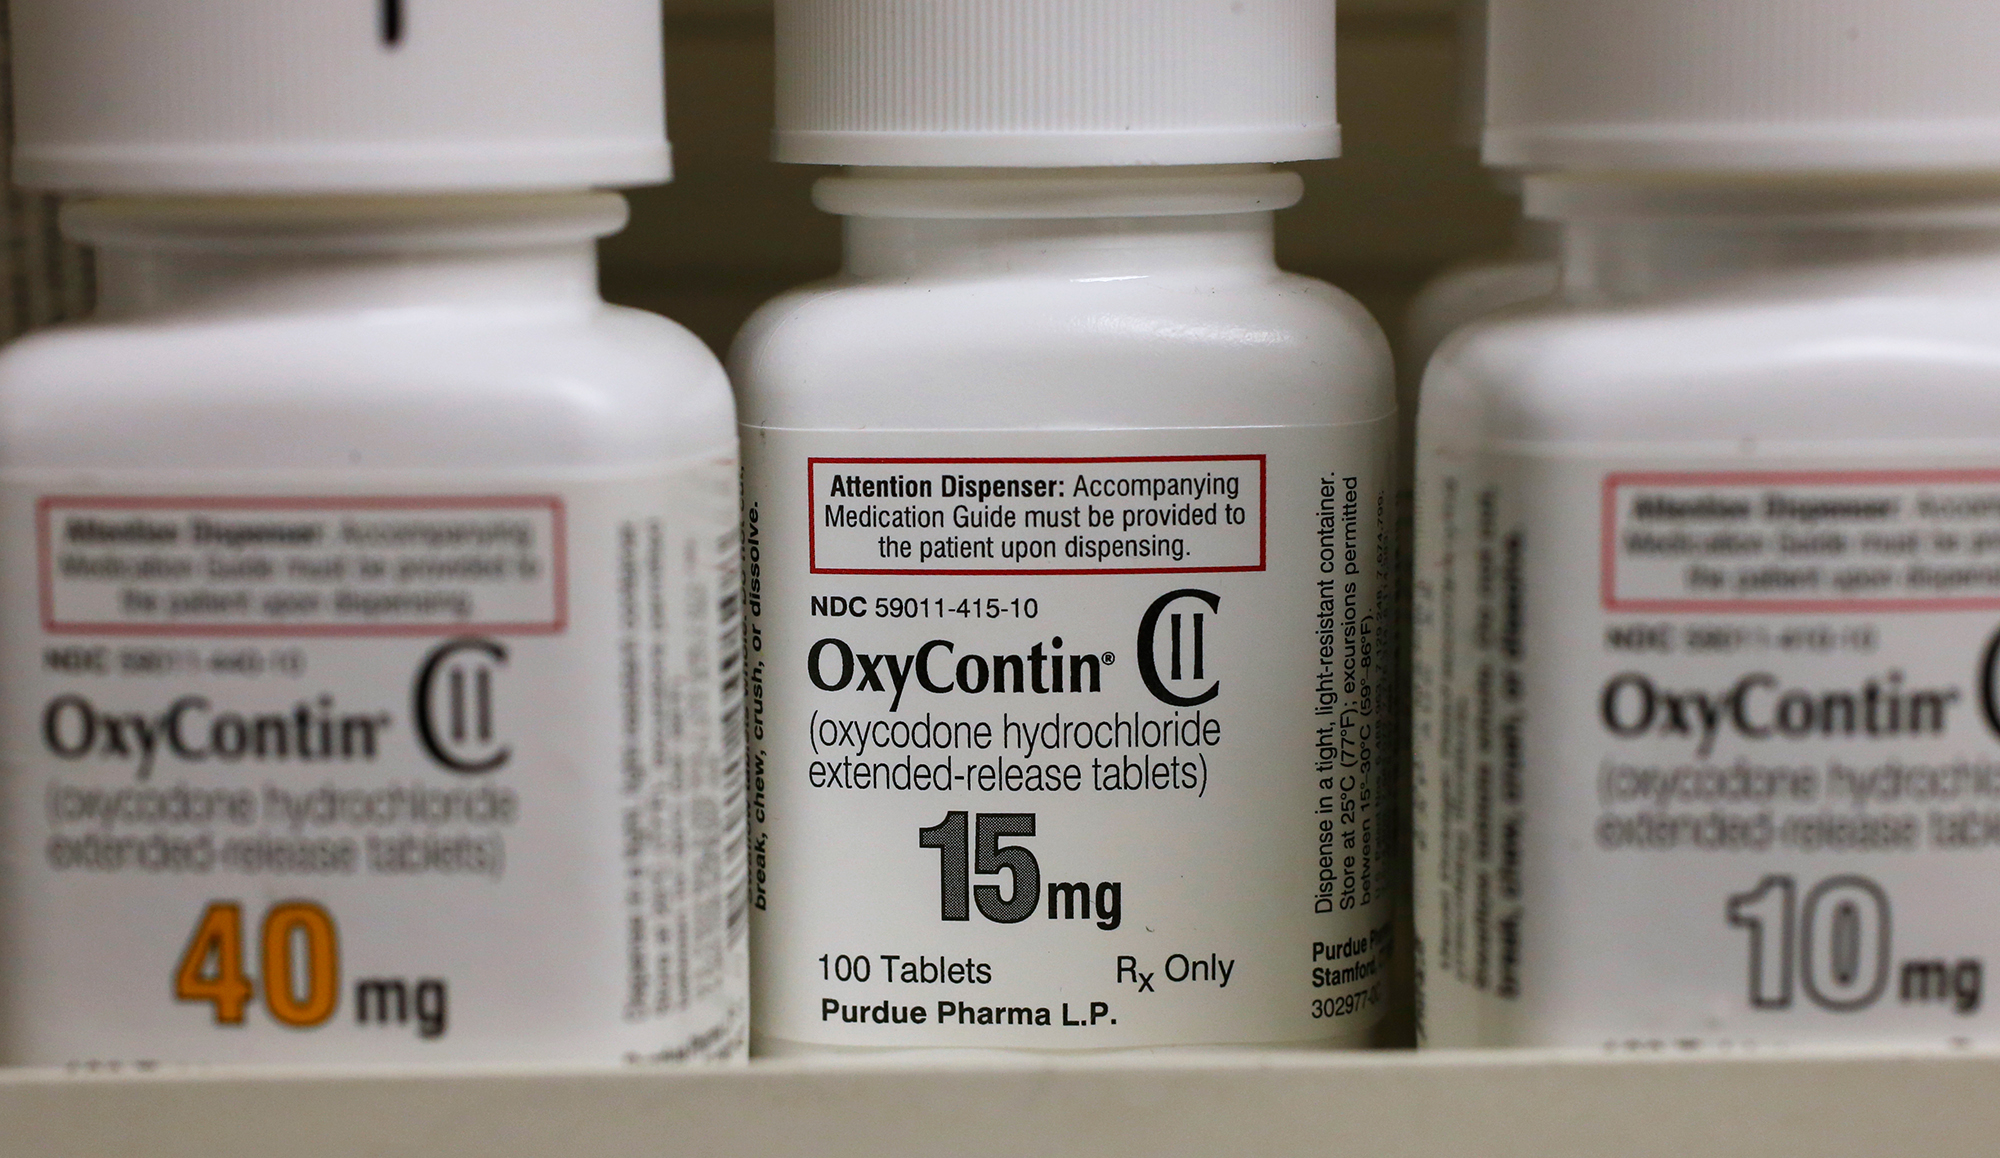 OxyContin maker to plead guilty to federal criminal charges, pay $8 billion, and will close the company